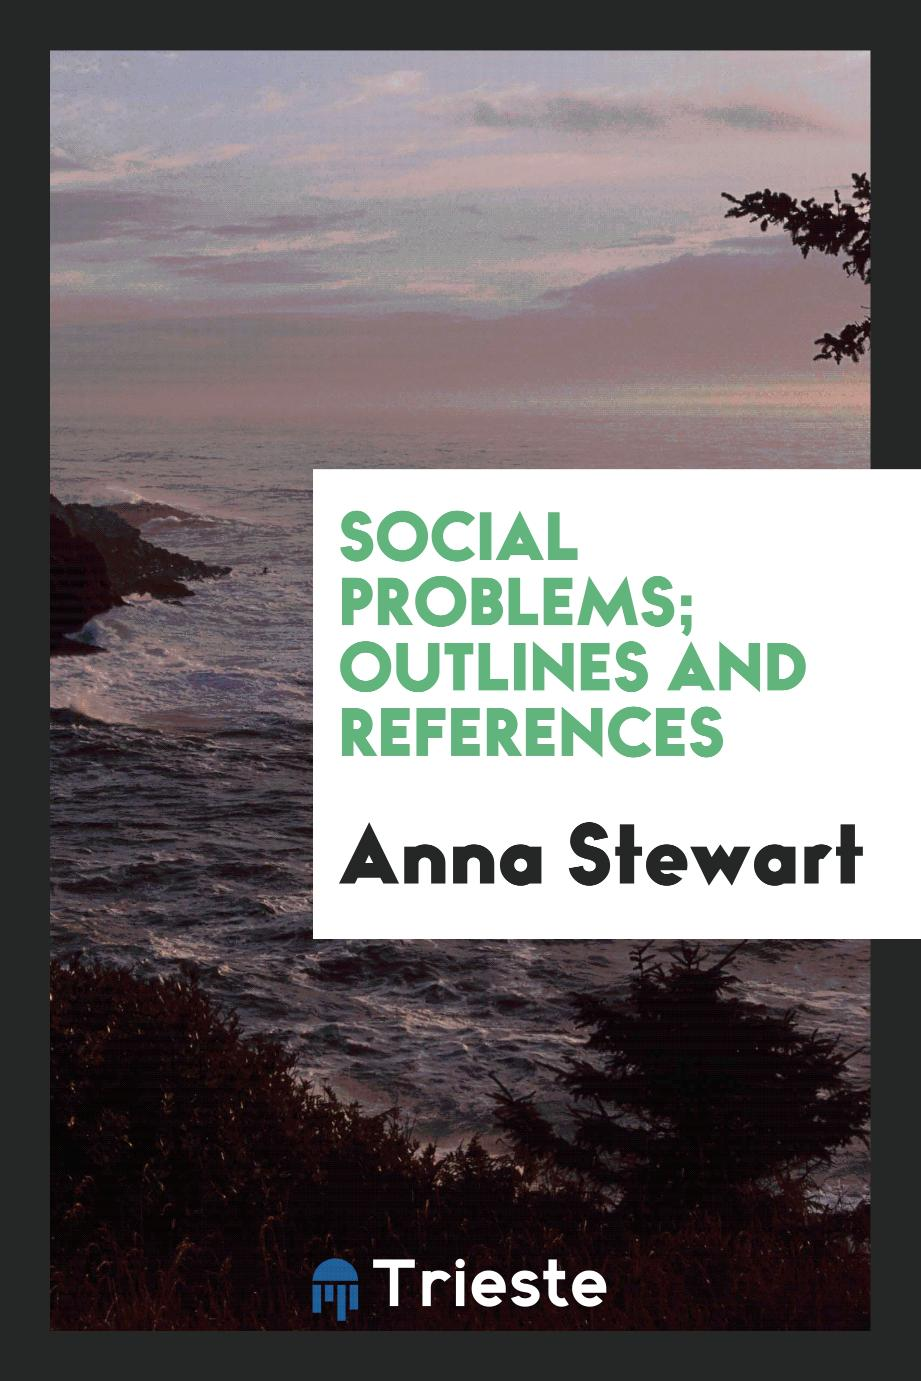 Social problems; outlines and references